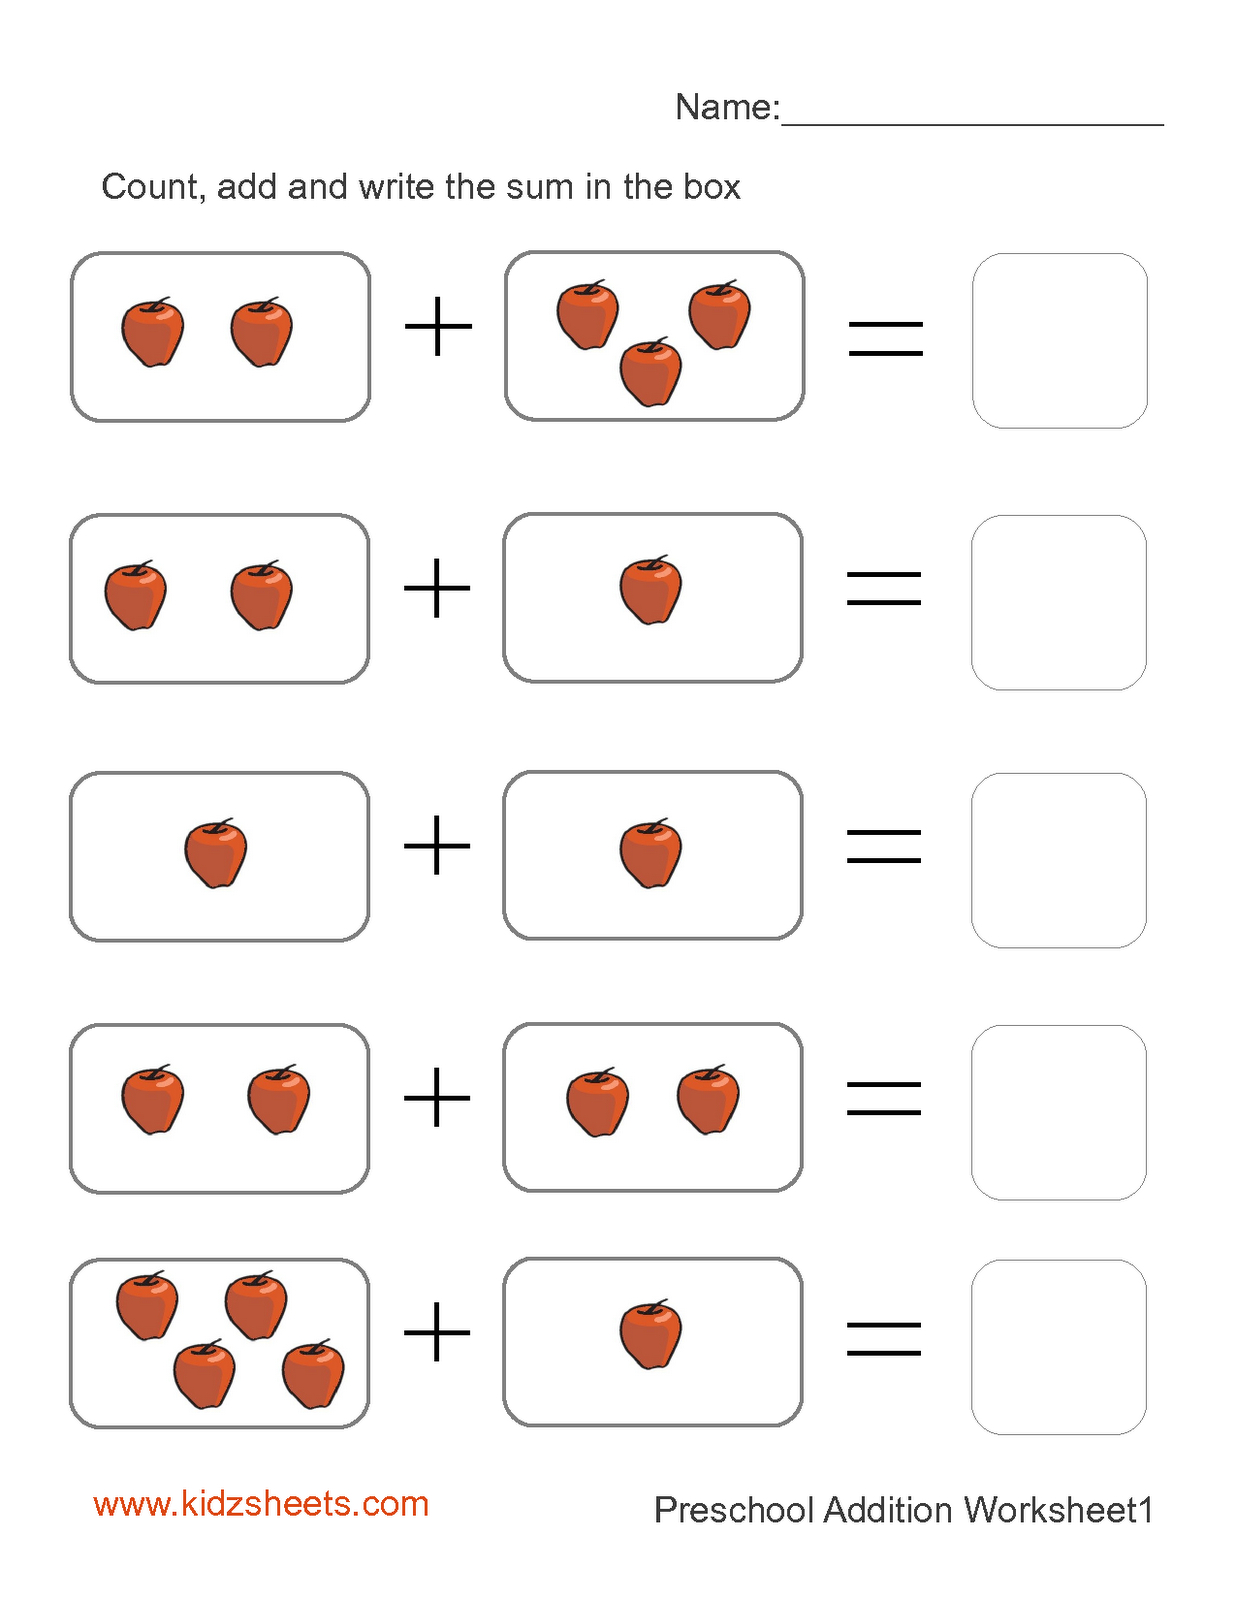 Preschool Printables | Printable Preschool Worksheets,free - Free Printable Preschool Addition Worksheets